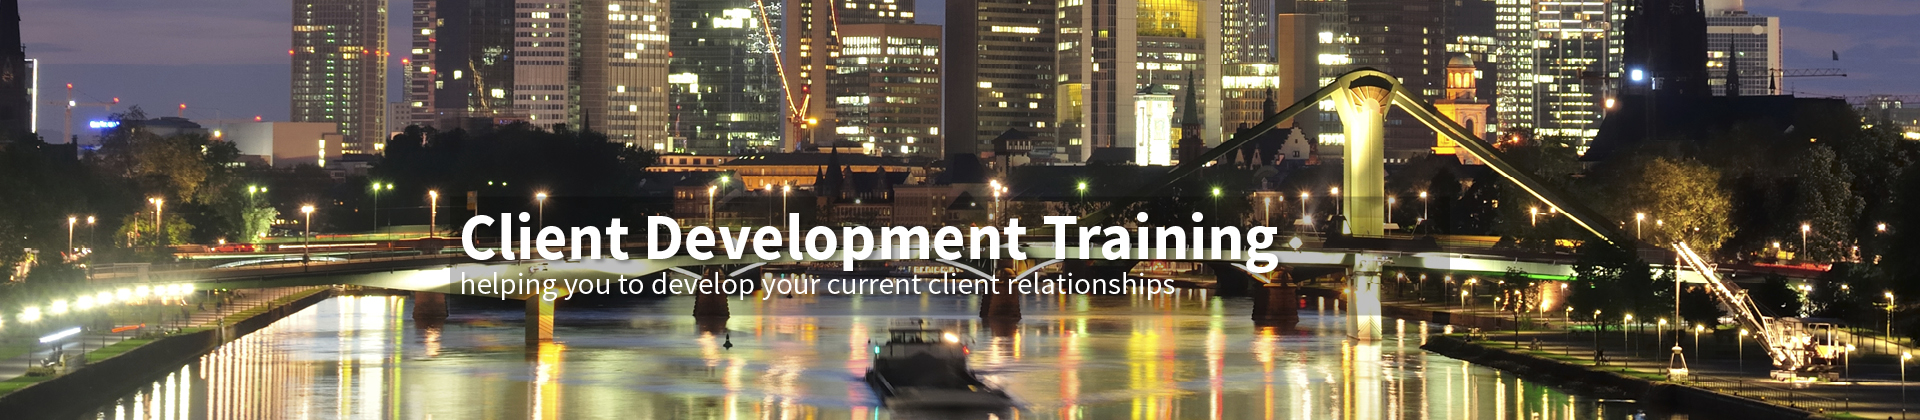 Client Development Training